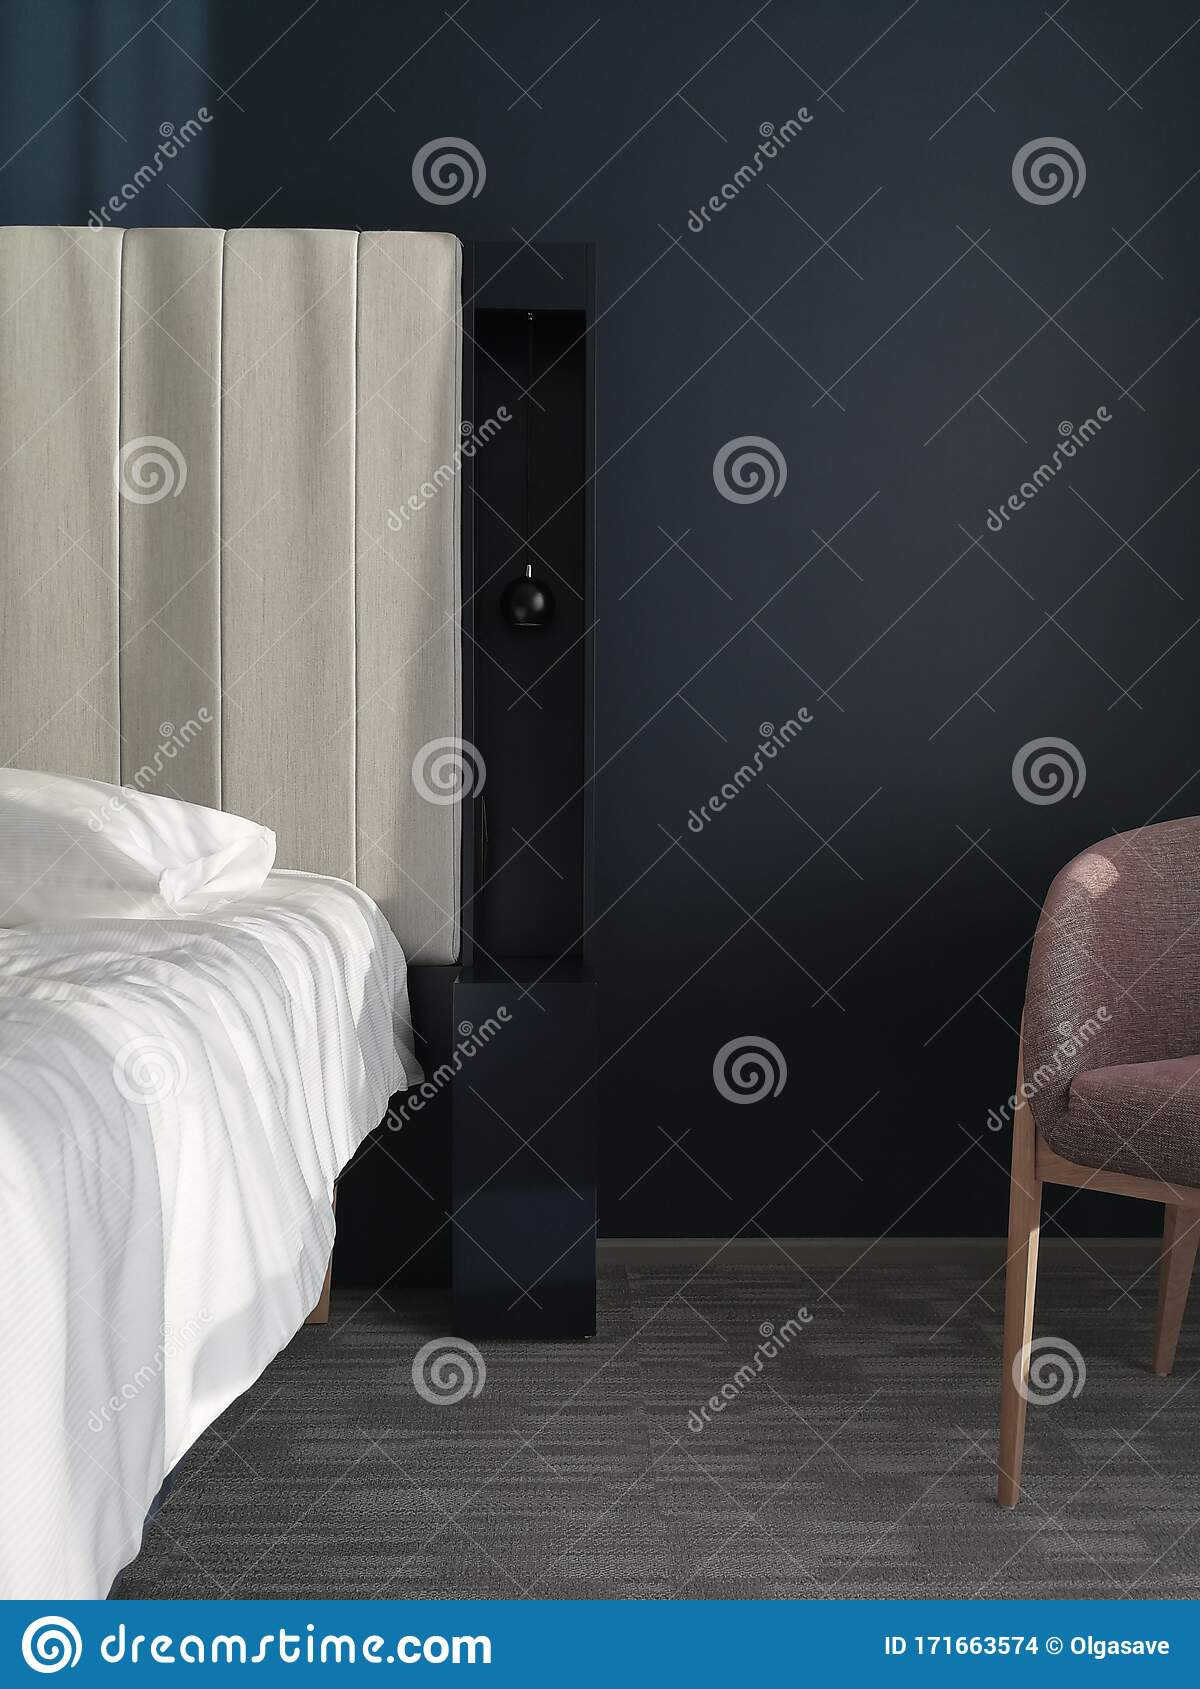 Modern Interior Design With Linen Bed Head Board And Navy Blue Wall Behind It Scandinavian Style Interior Design Stock Photo Image Of Detail Luxury 171663574